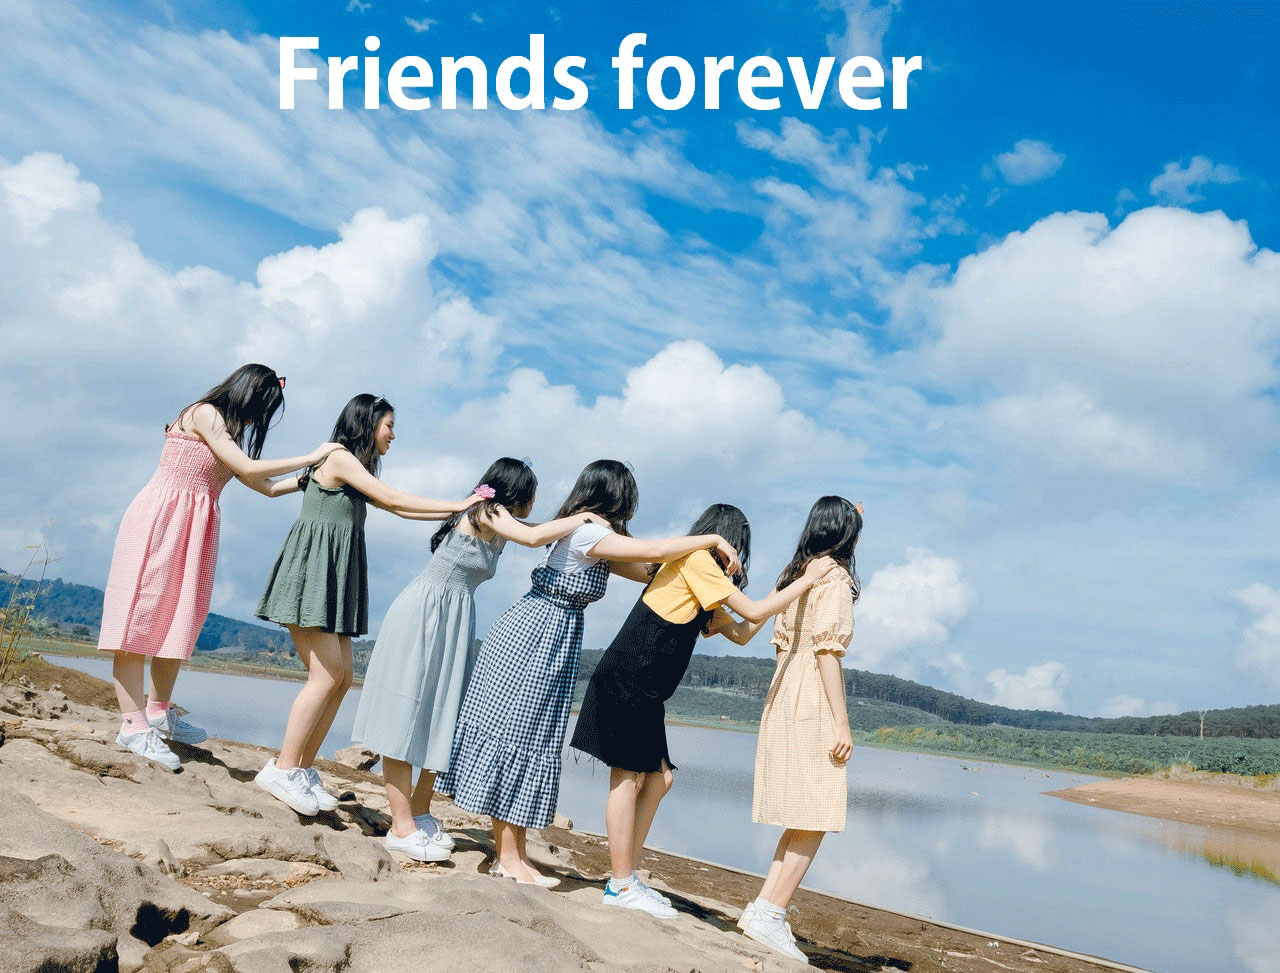 free Latest Friend Forever Images